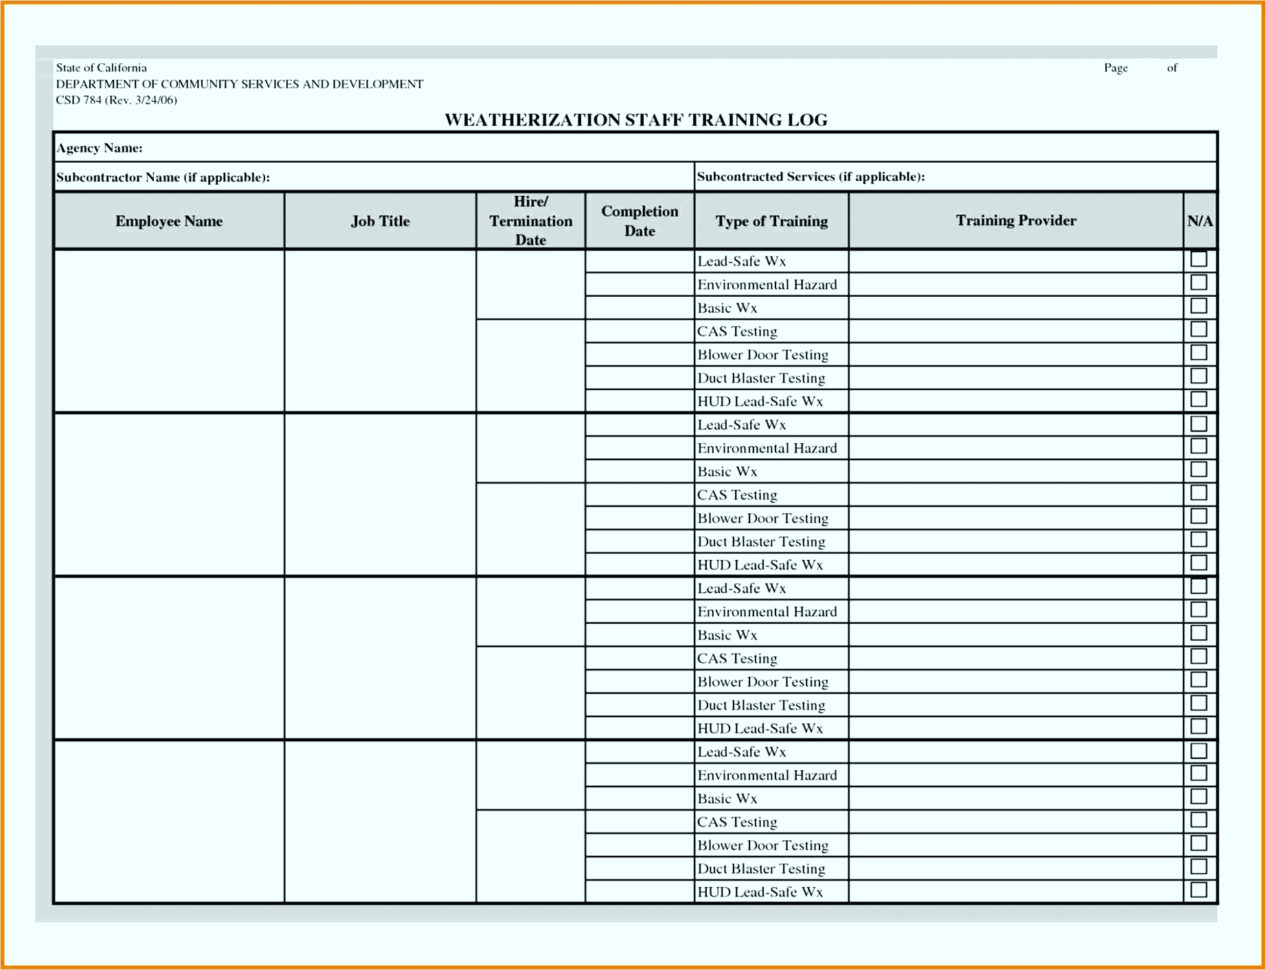 Excel Spreadsheet To Track Employee Training. Excel Spreadsheet To To Spreadsheet Training